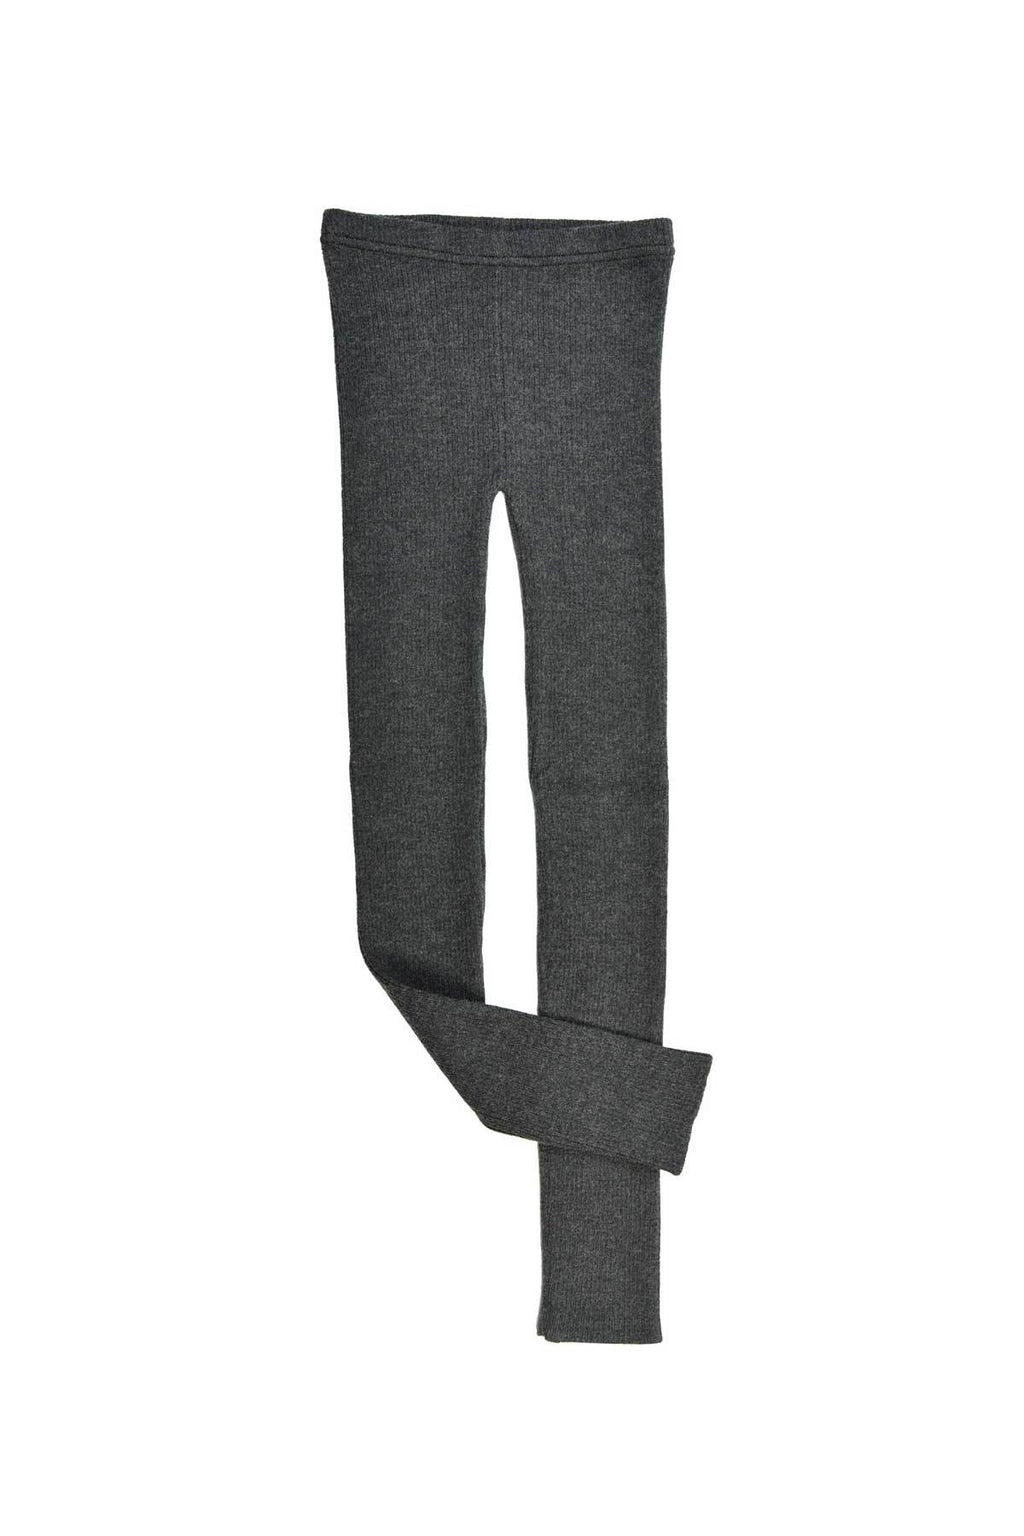 Nui Knit Leggings- Charcoal